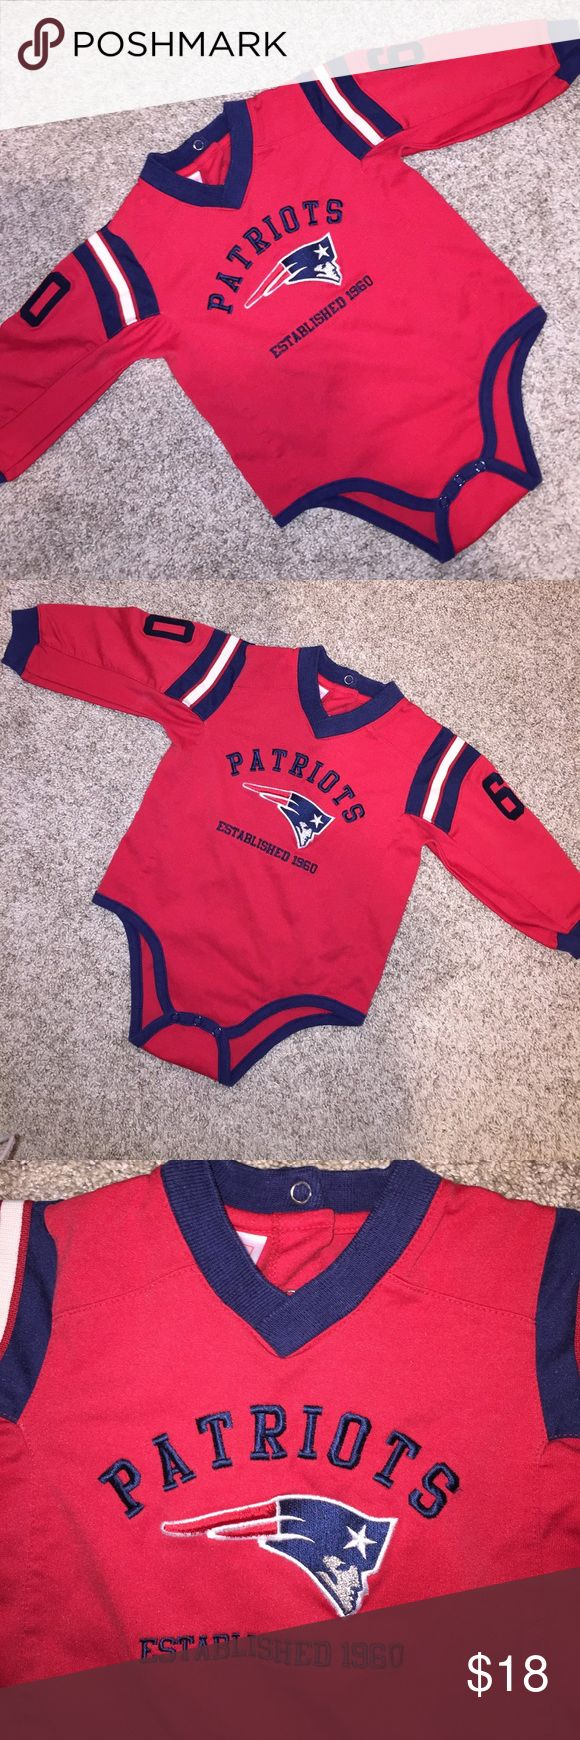 NFL Patriots One-Piece size 18 months worn 1x Cute NFL Patriots One-Piece size 18 months worn 1x. Snaps between legs for easy changes. Excellent Quality. Perfect for your Little New England Patriots Fan. NFL Shirts & Tops